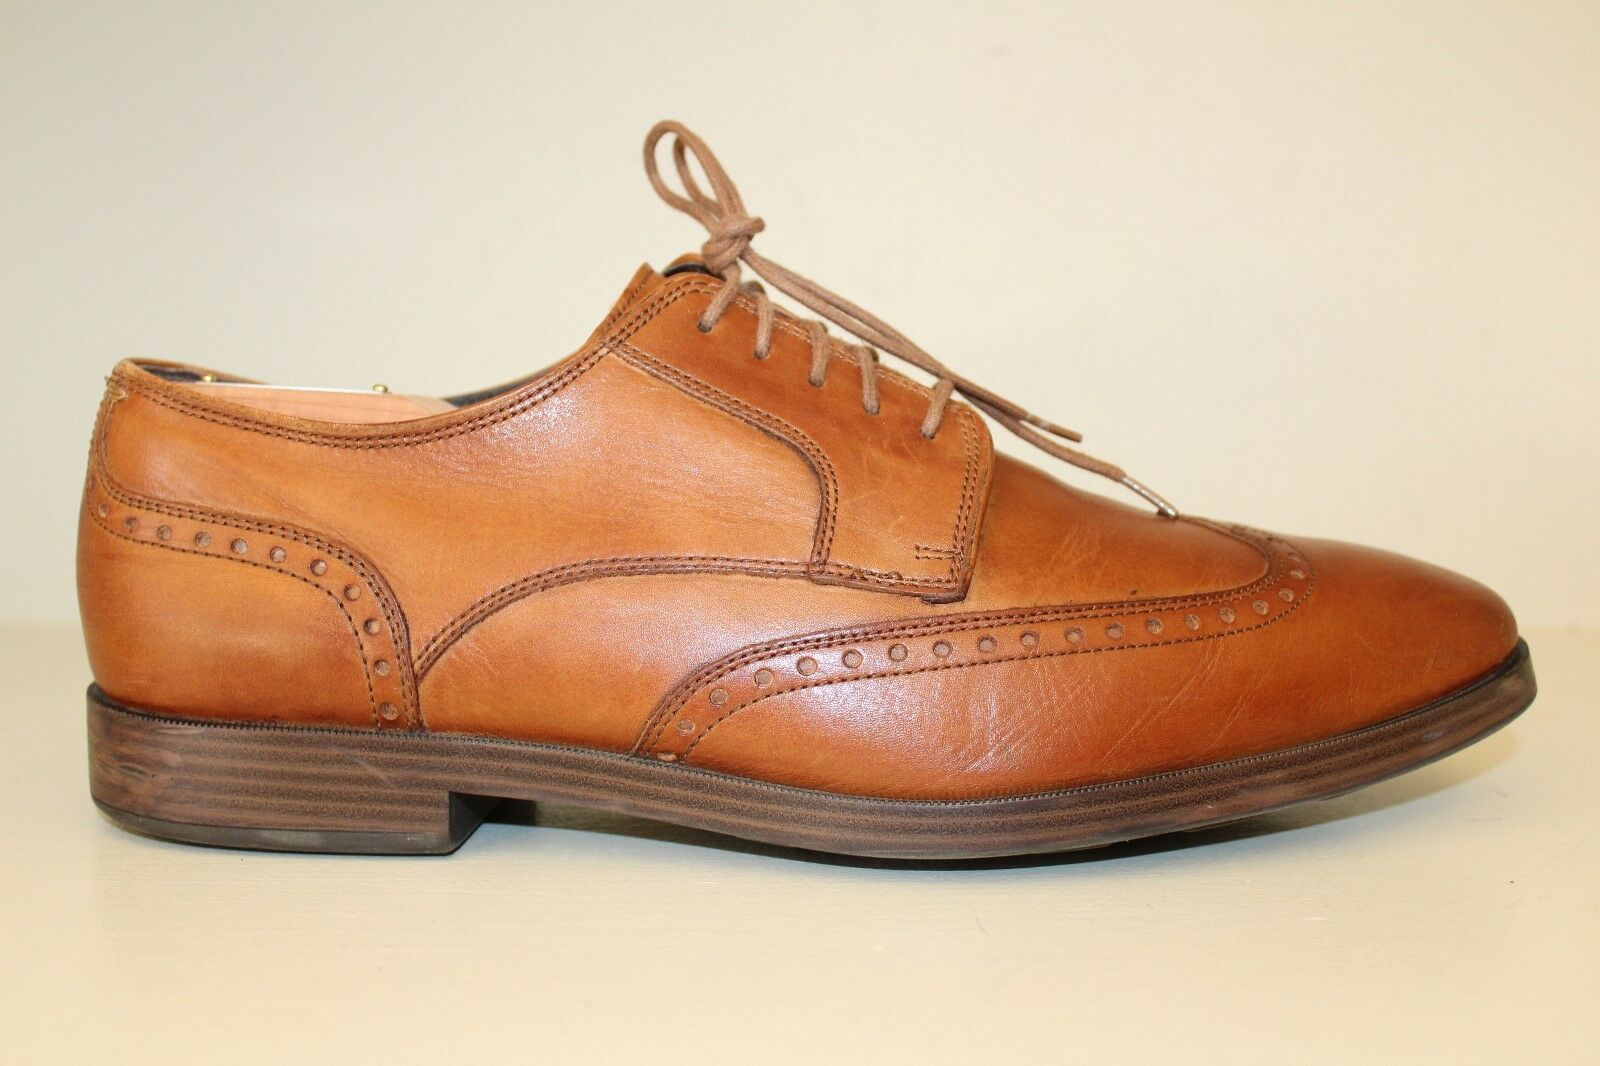 Cole Haan Uomo Grand OS Oxford Shoes Sz 11 M Brown Pelle Wingtip Lace Up Dress